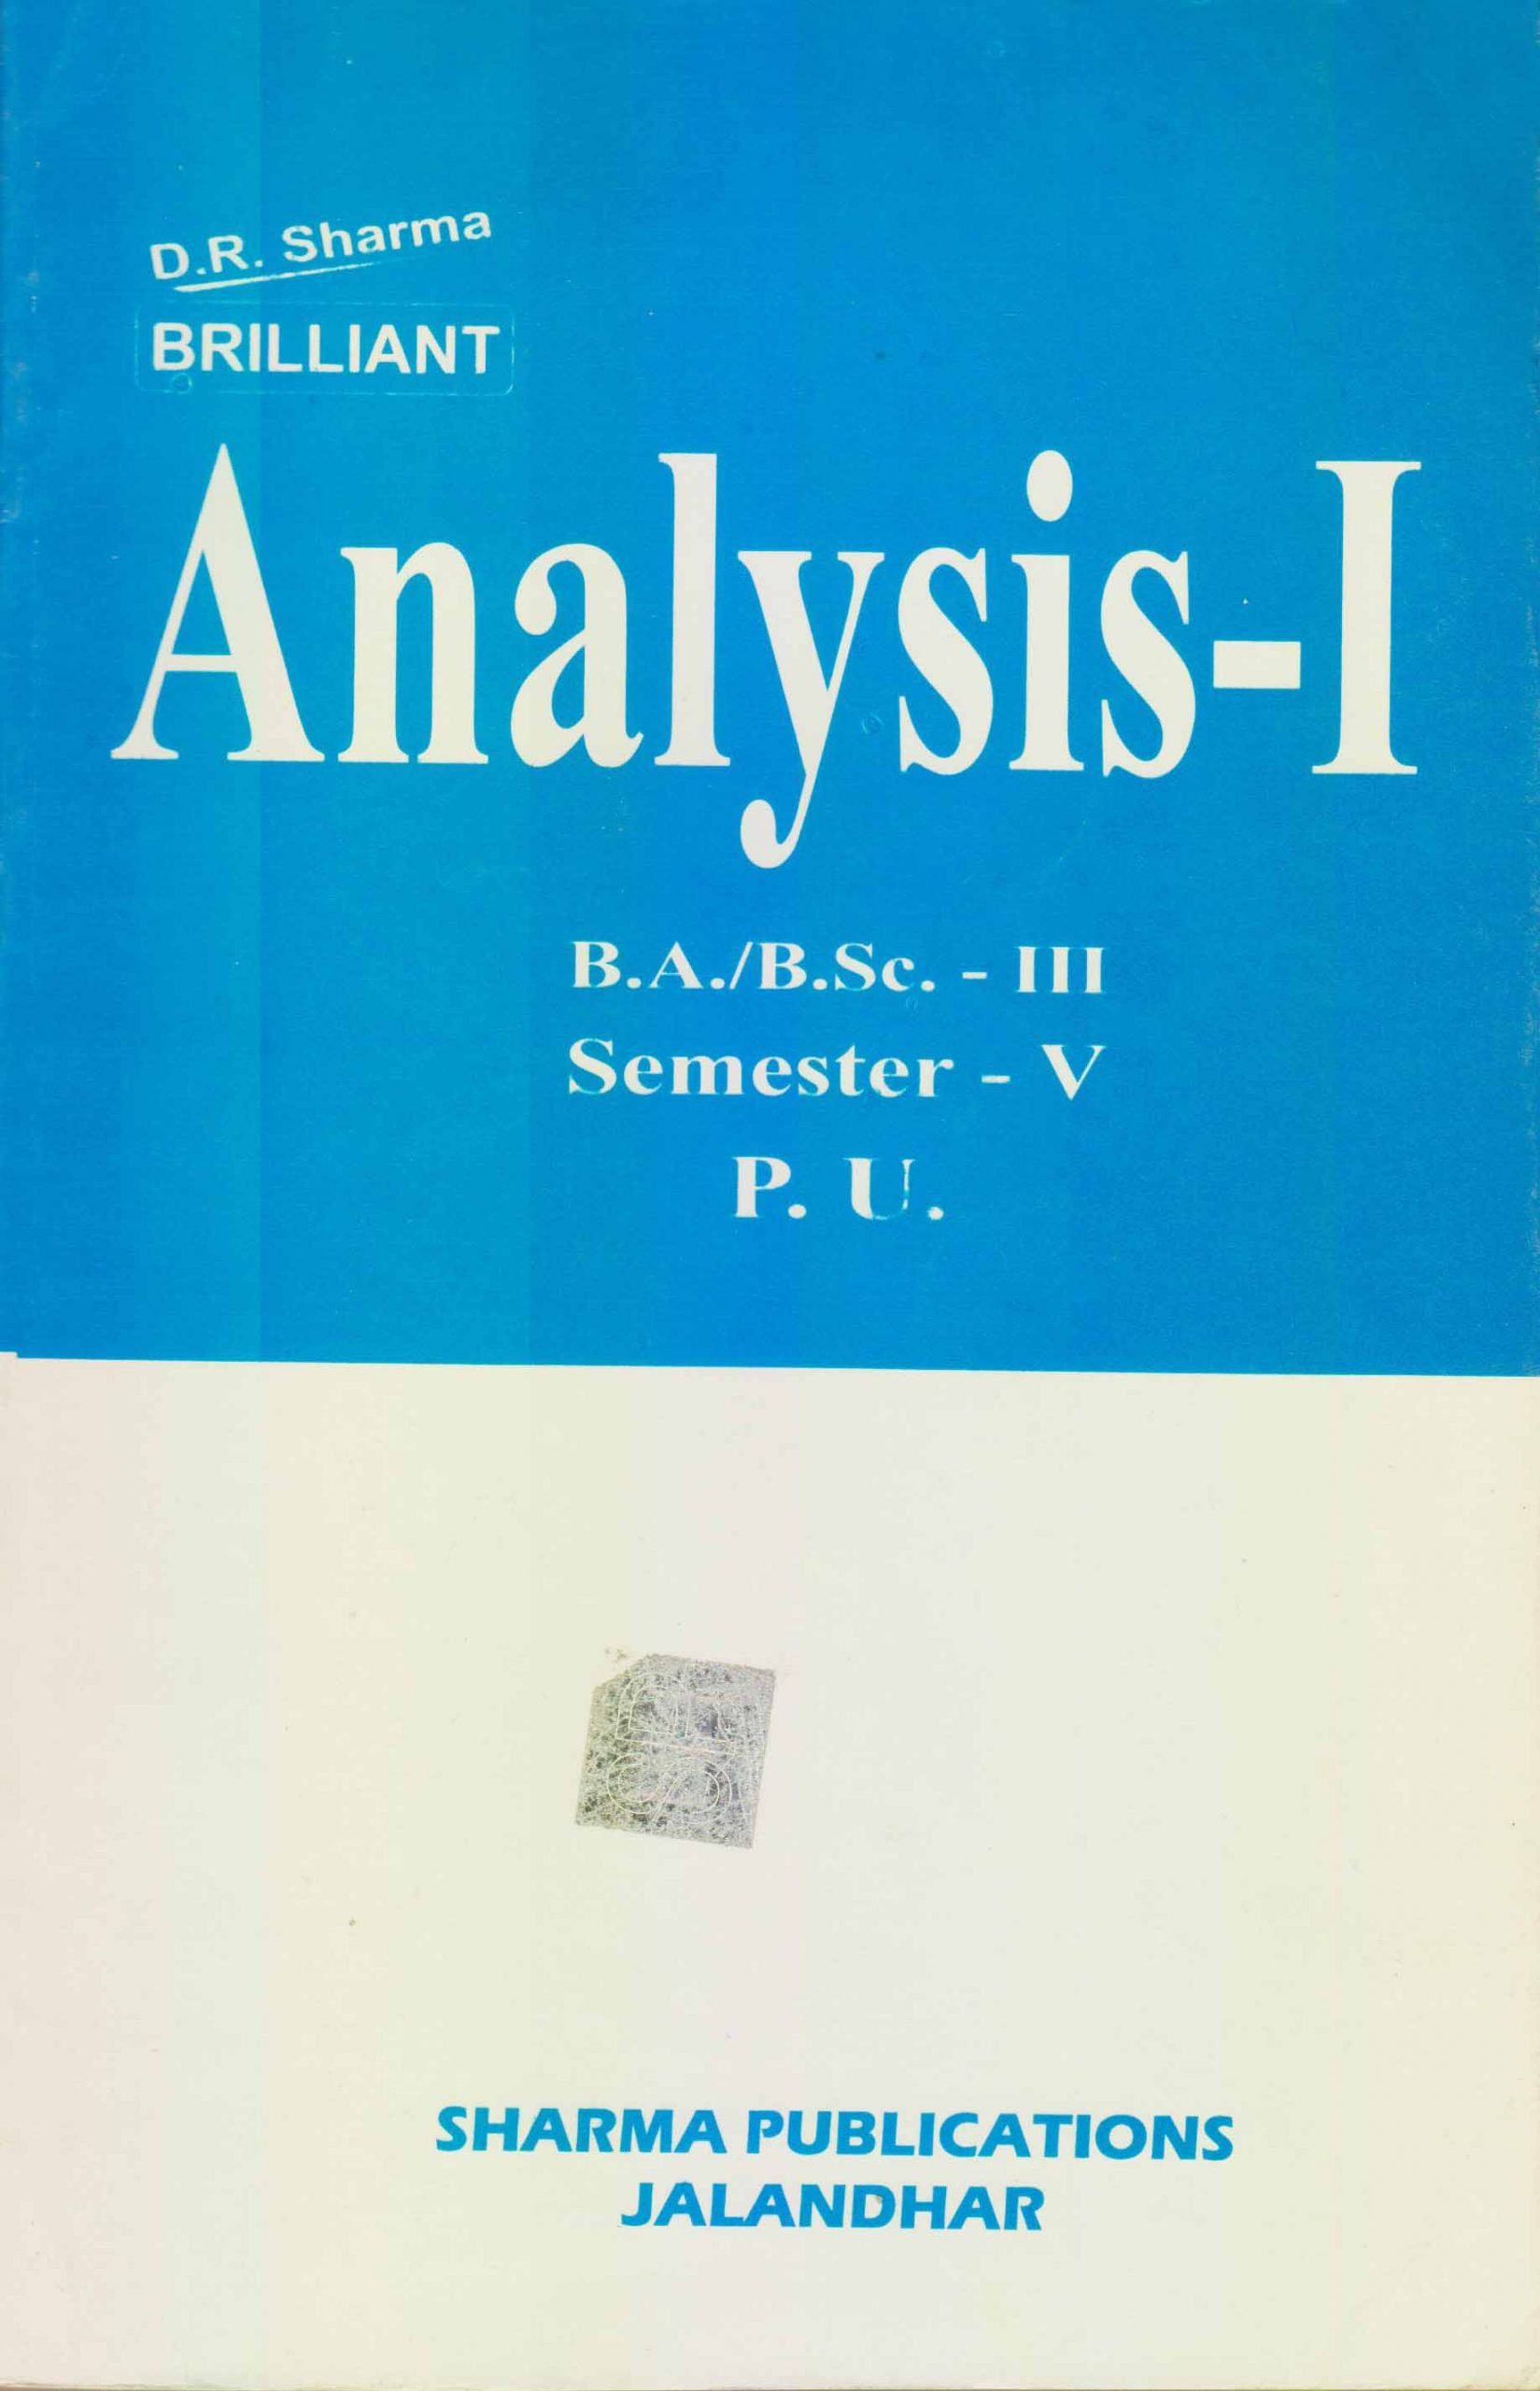 Analysis-I for B.A. / B.Sc.-3, Sem. 5 (P.U.) by D.R. Sharma